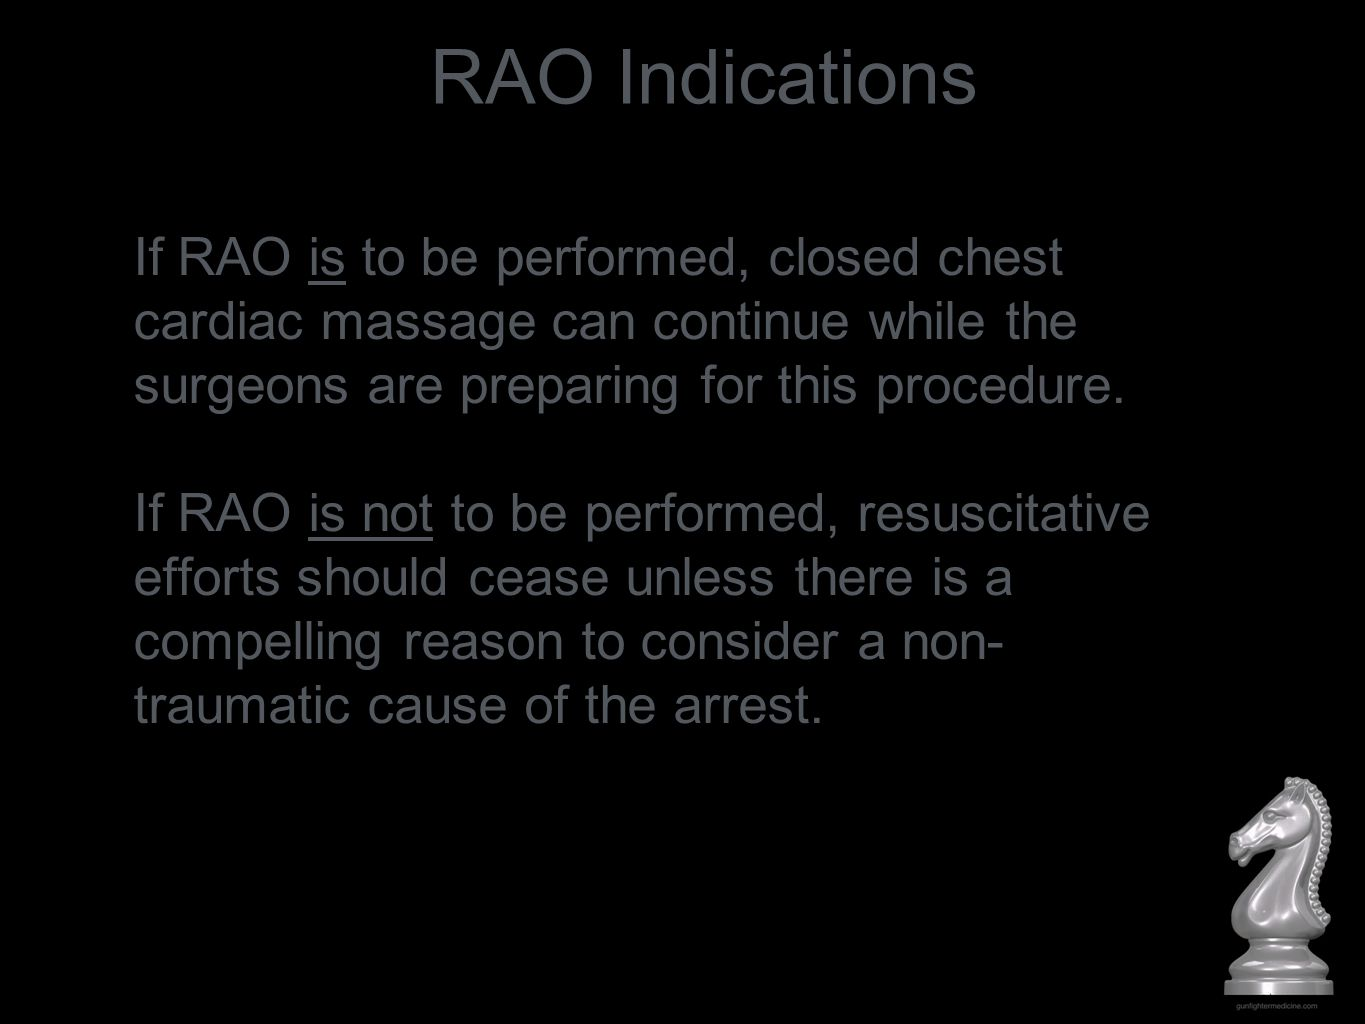 RAO Indications If RAO is to be performed, closed chest cardiac massage can continue while the surgeons are preparing for this procedure.